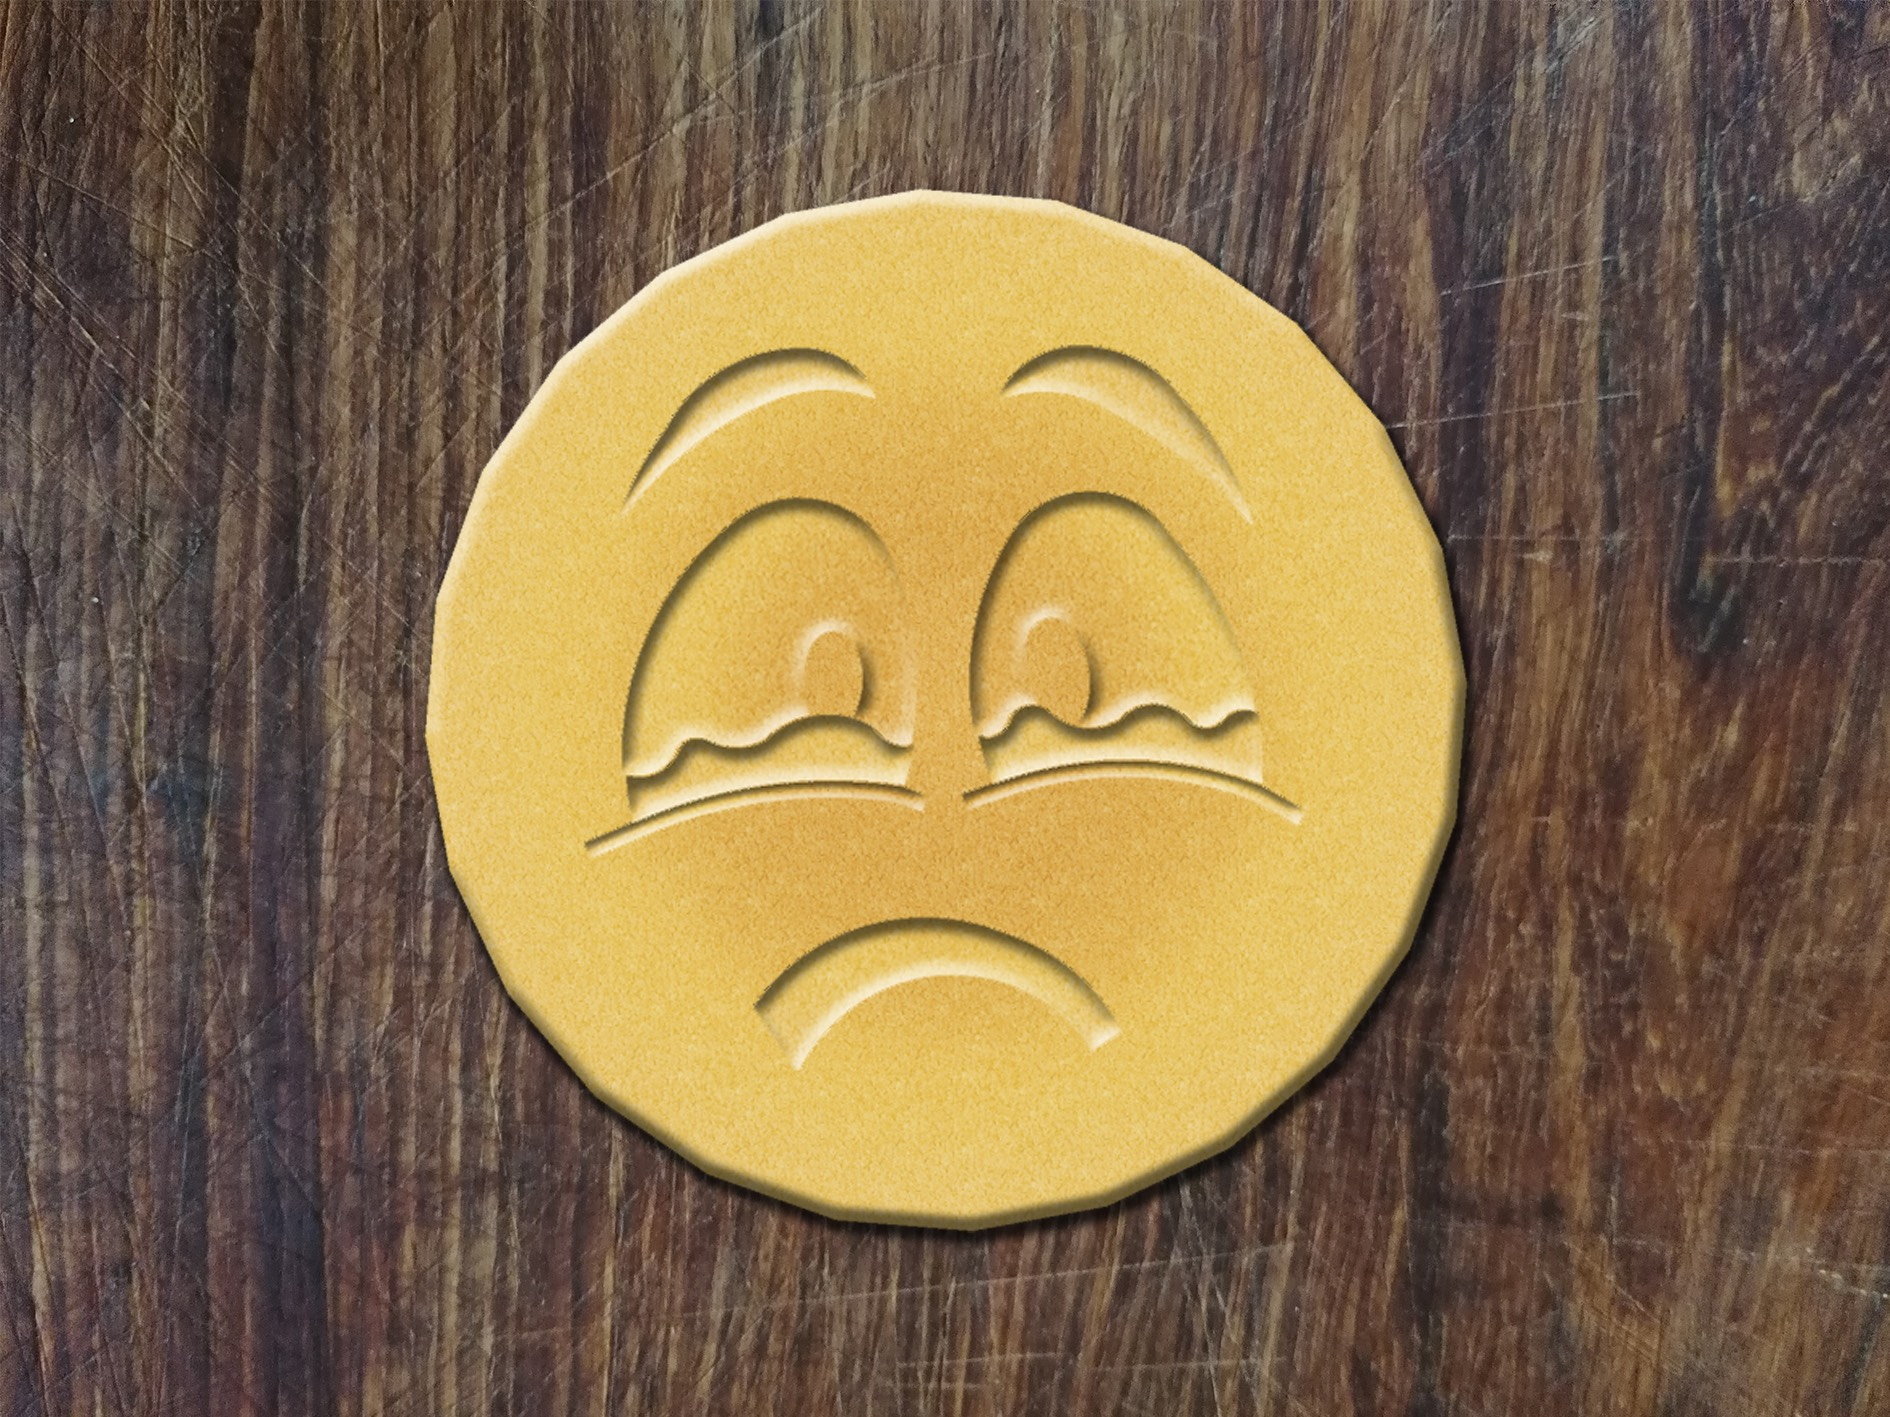 Sad Emoti-Cookie